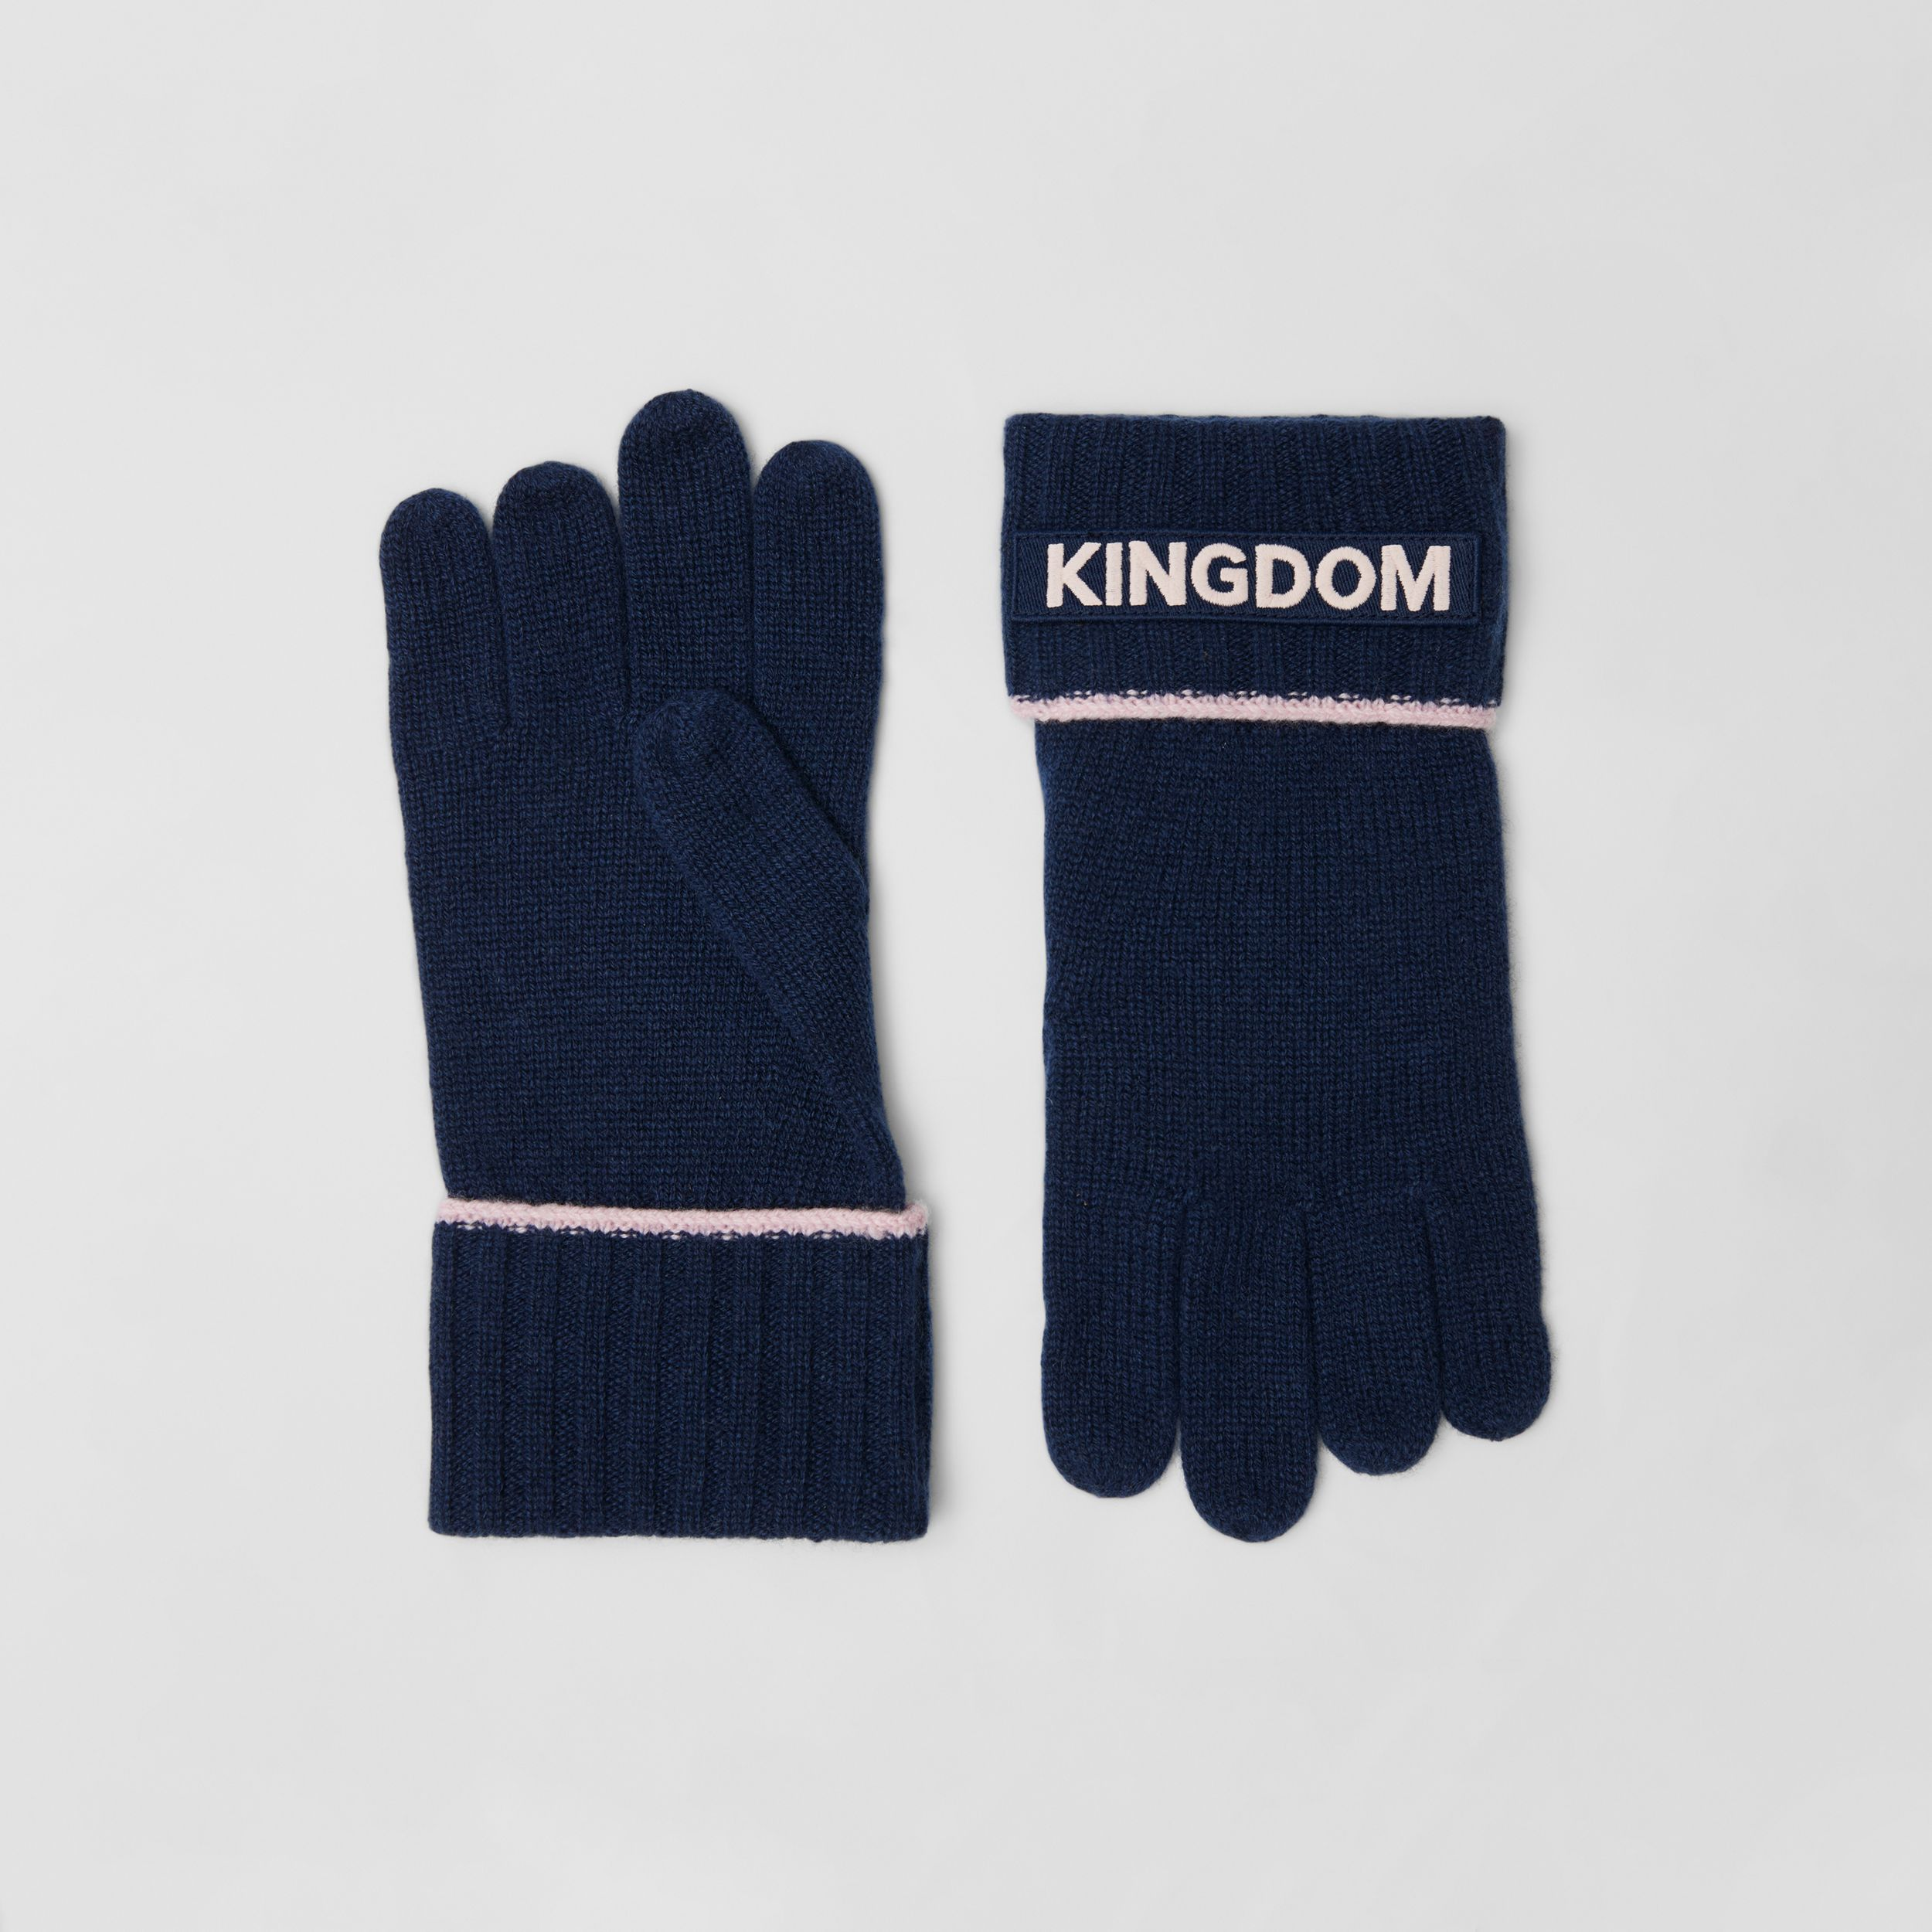 Kingdom and Logo Appliqué Cashmere Gloves in Navy | Burberry - 1